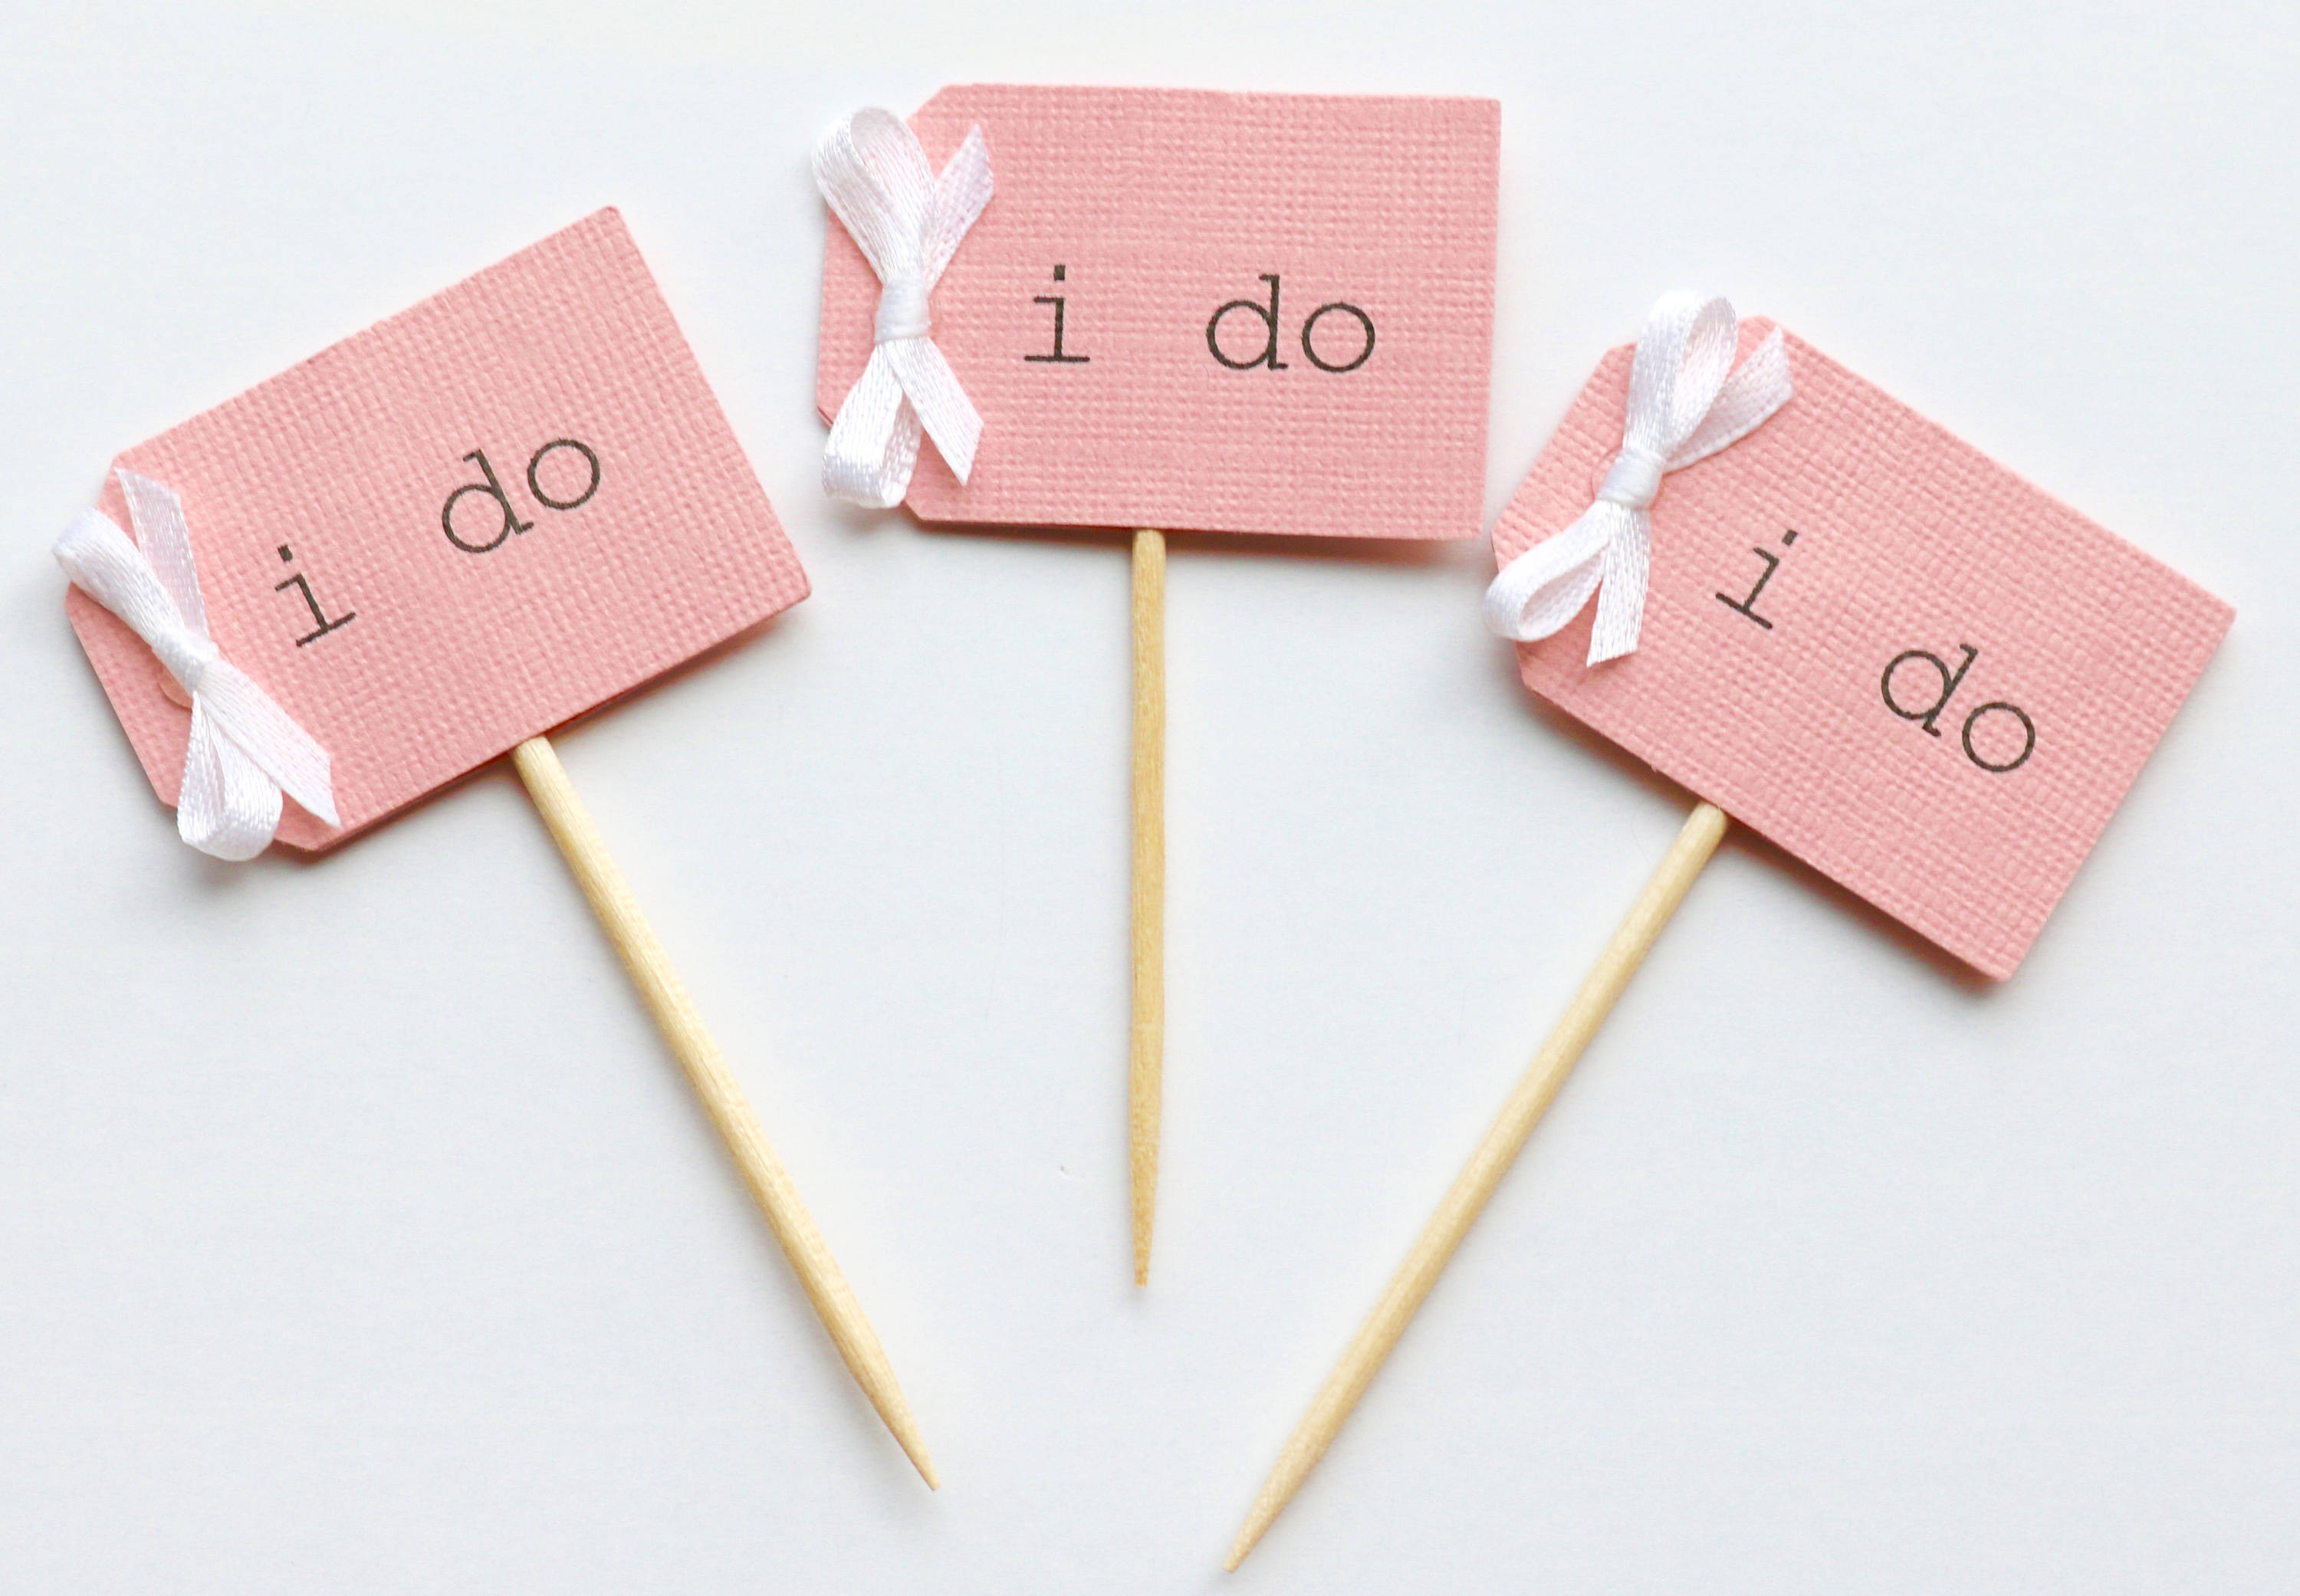 12 i do cupcake toppers beige with blush pink i do cupcake